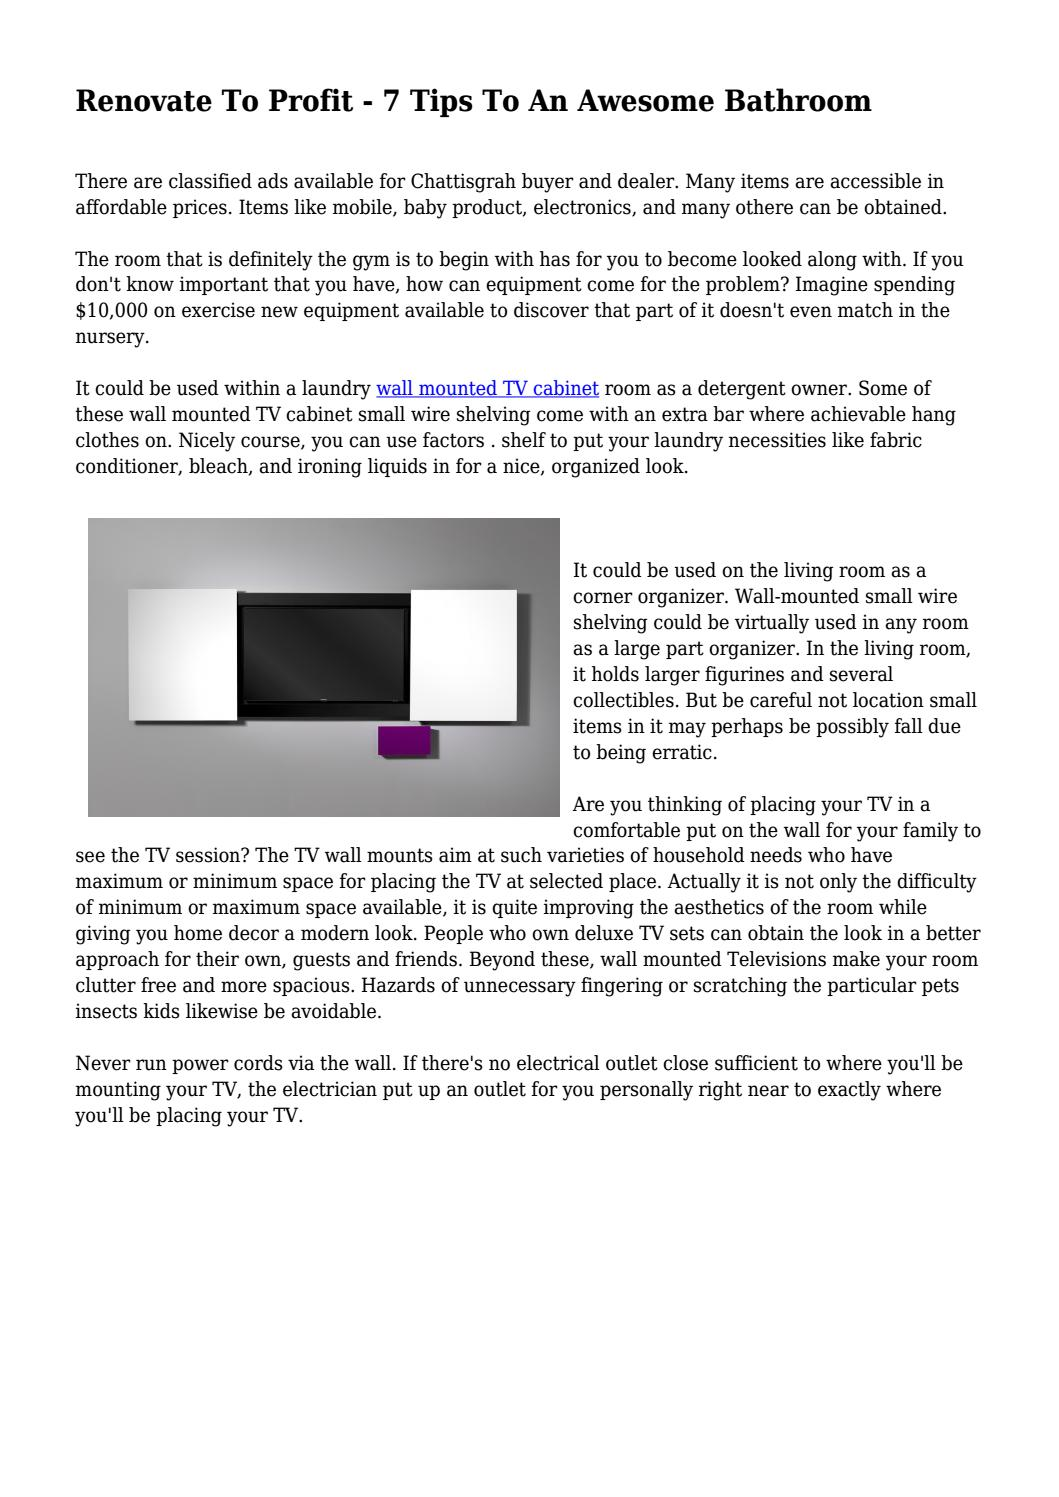 Renovate To Profit 7 Tips An Awesome Bathroom By Mrmagazinenext Wiring Up Wall Mounted Tv Issuu